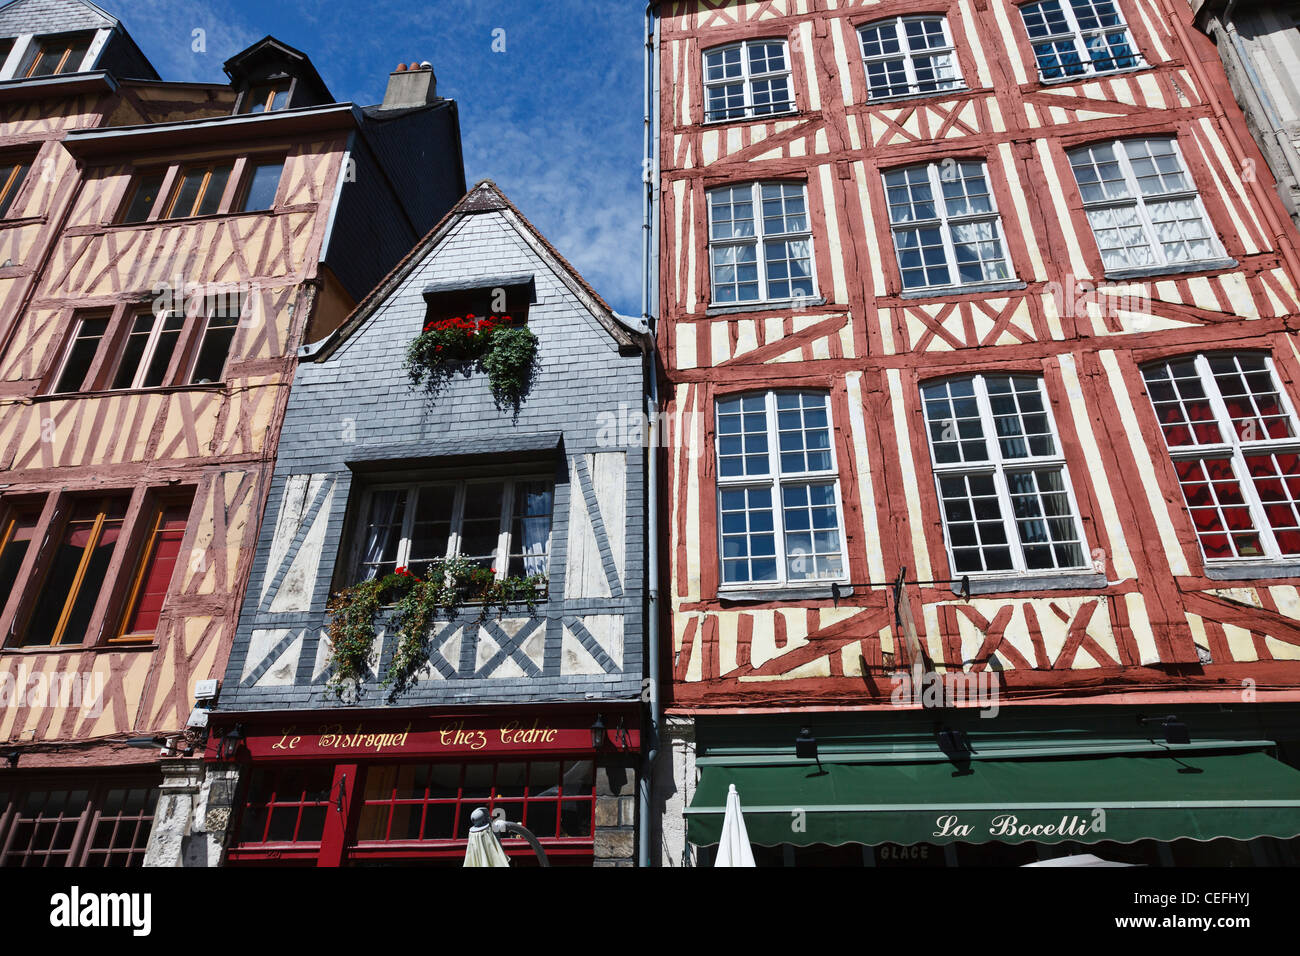 Medieval half-timbered buildings in Rue Martainville, Rouen, Normandy, France - Stock Image